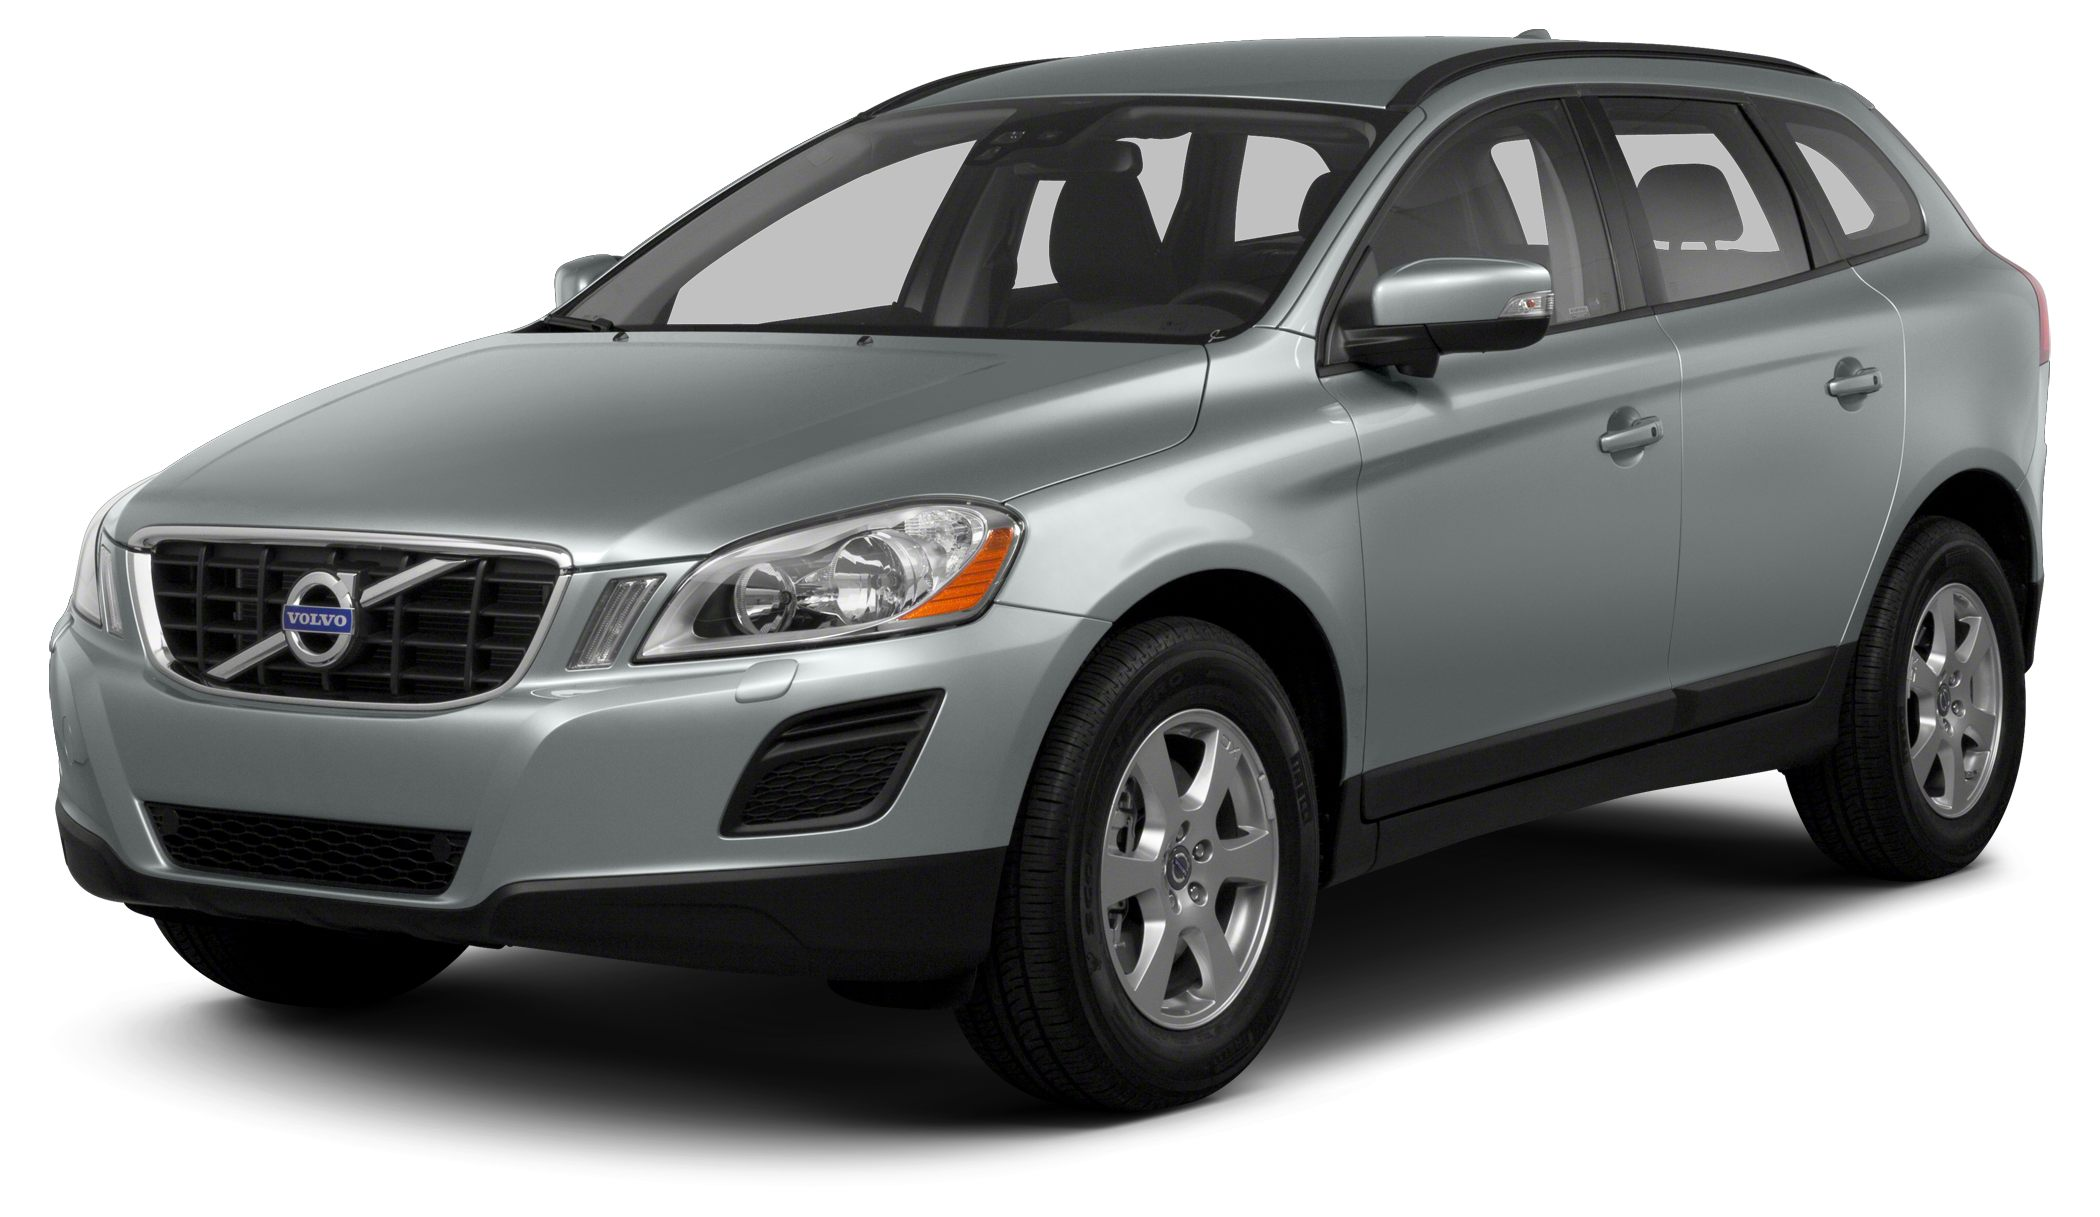 2013 Volvo XC60 T6 Miles 45218Color Silver Stock 138191A VIN YV4902DZ3D2385573